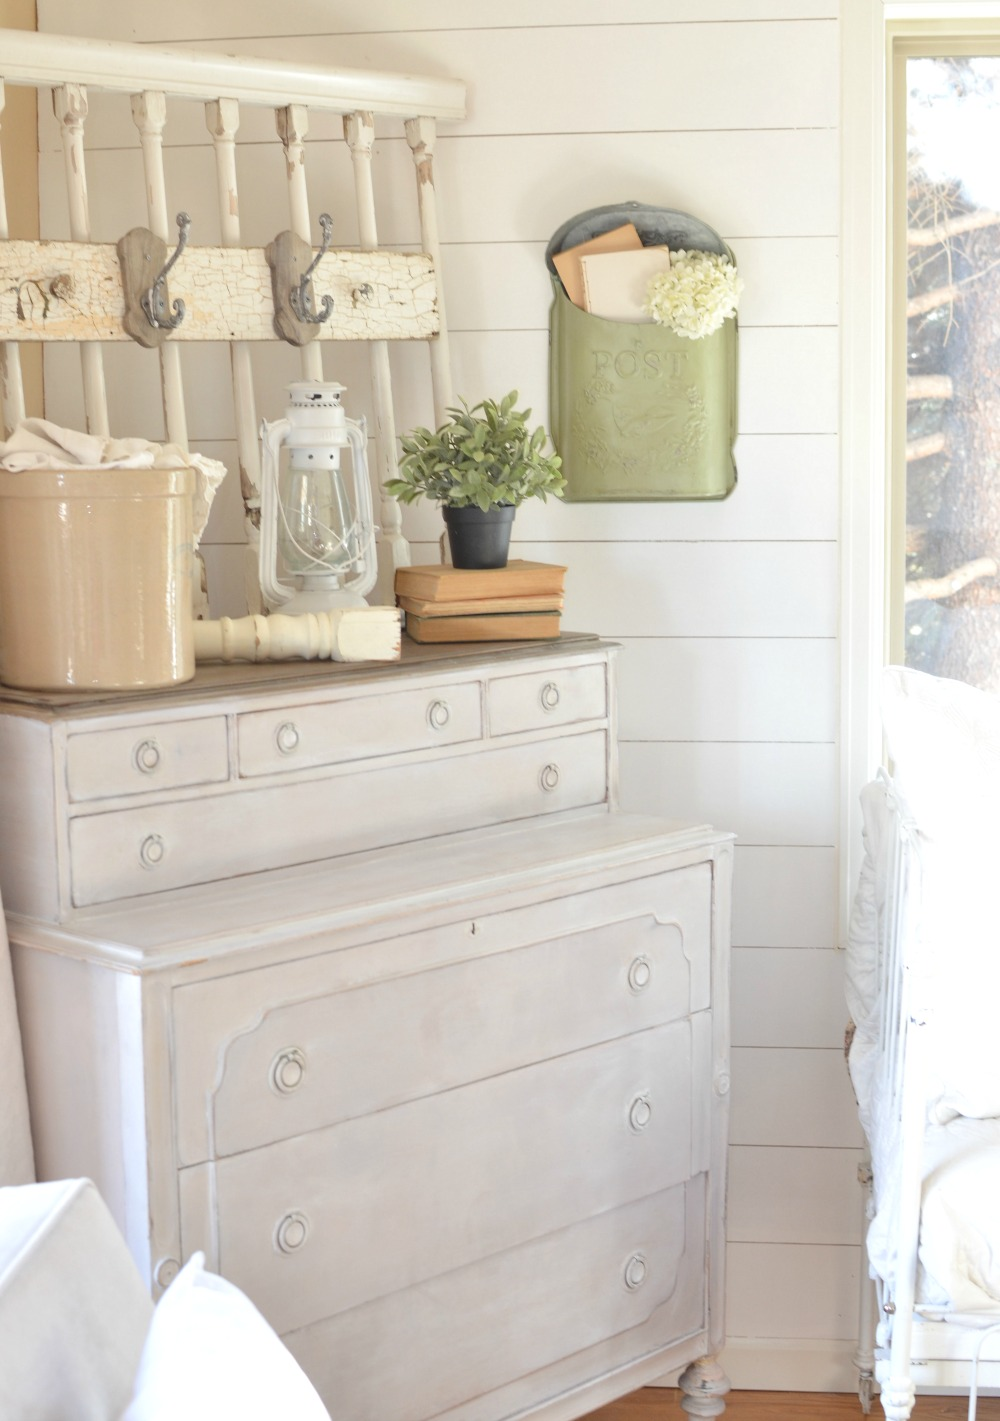 Where to Find Vintage Decor on A Budget Where to Find Vintage Decor on A Budget  Practical tips to decorating your  home with